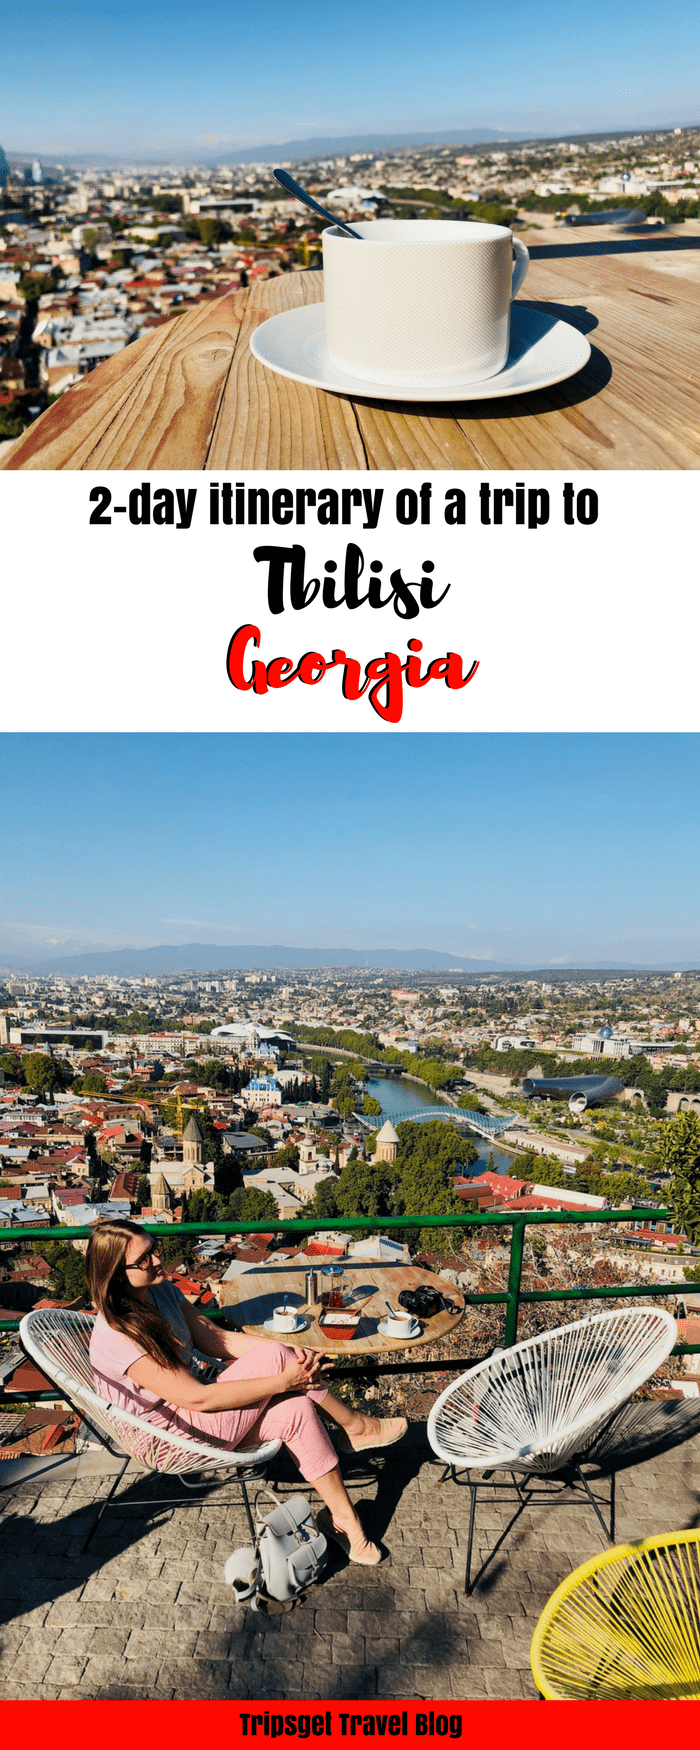 What to see in Tbilisi, Georgia? 2-day itinerary for Tbilisi, Georgia